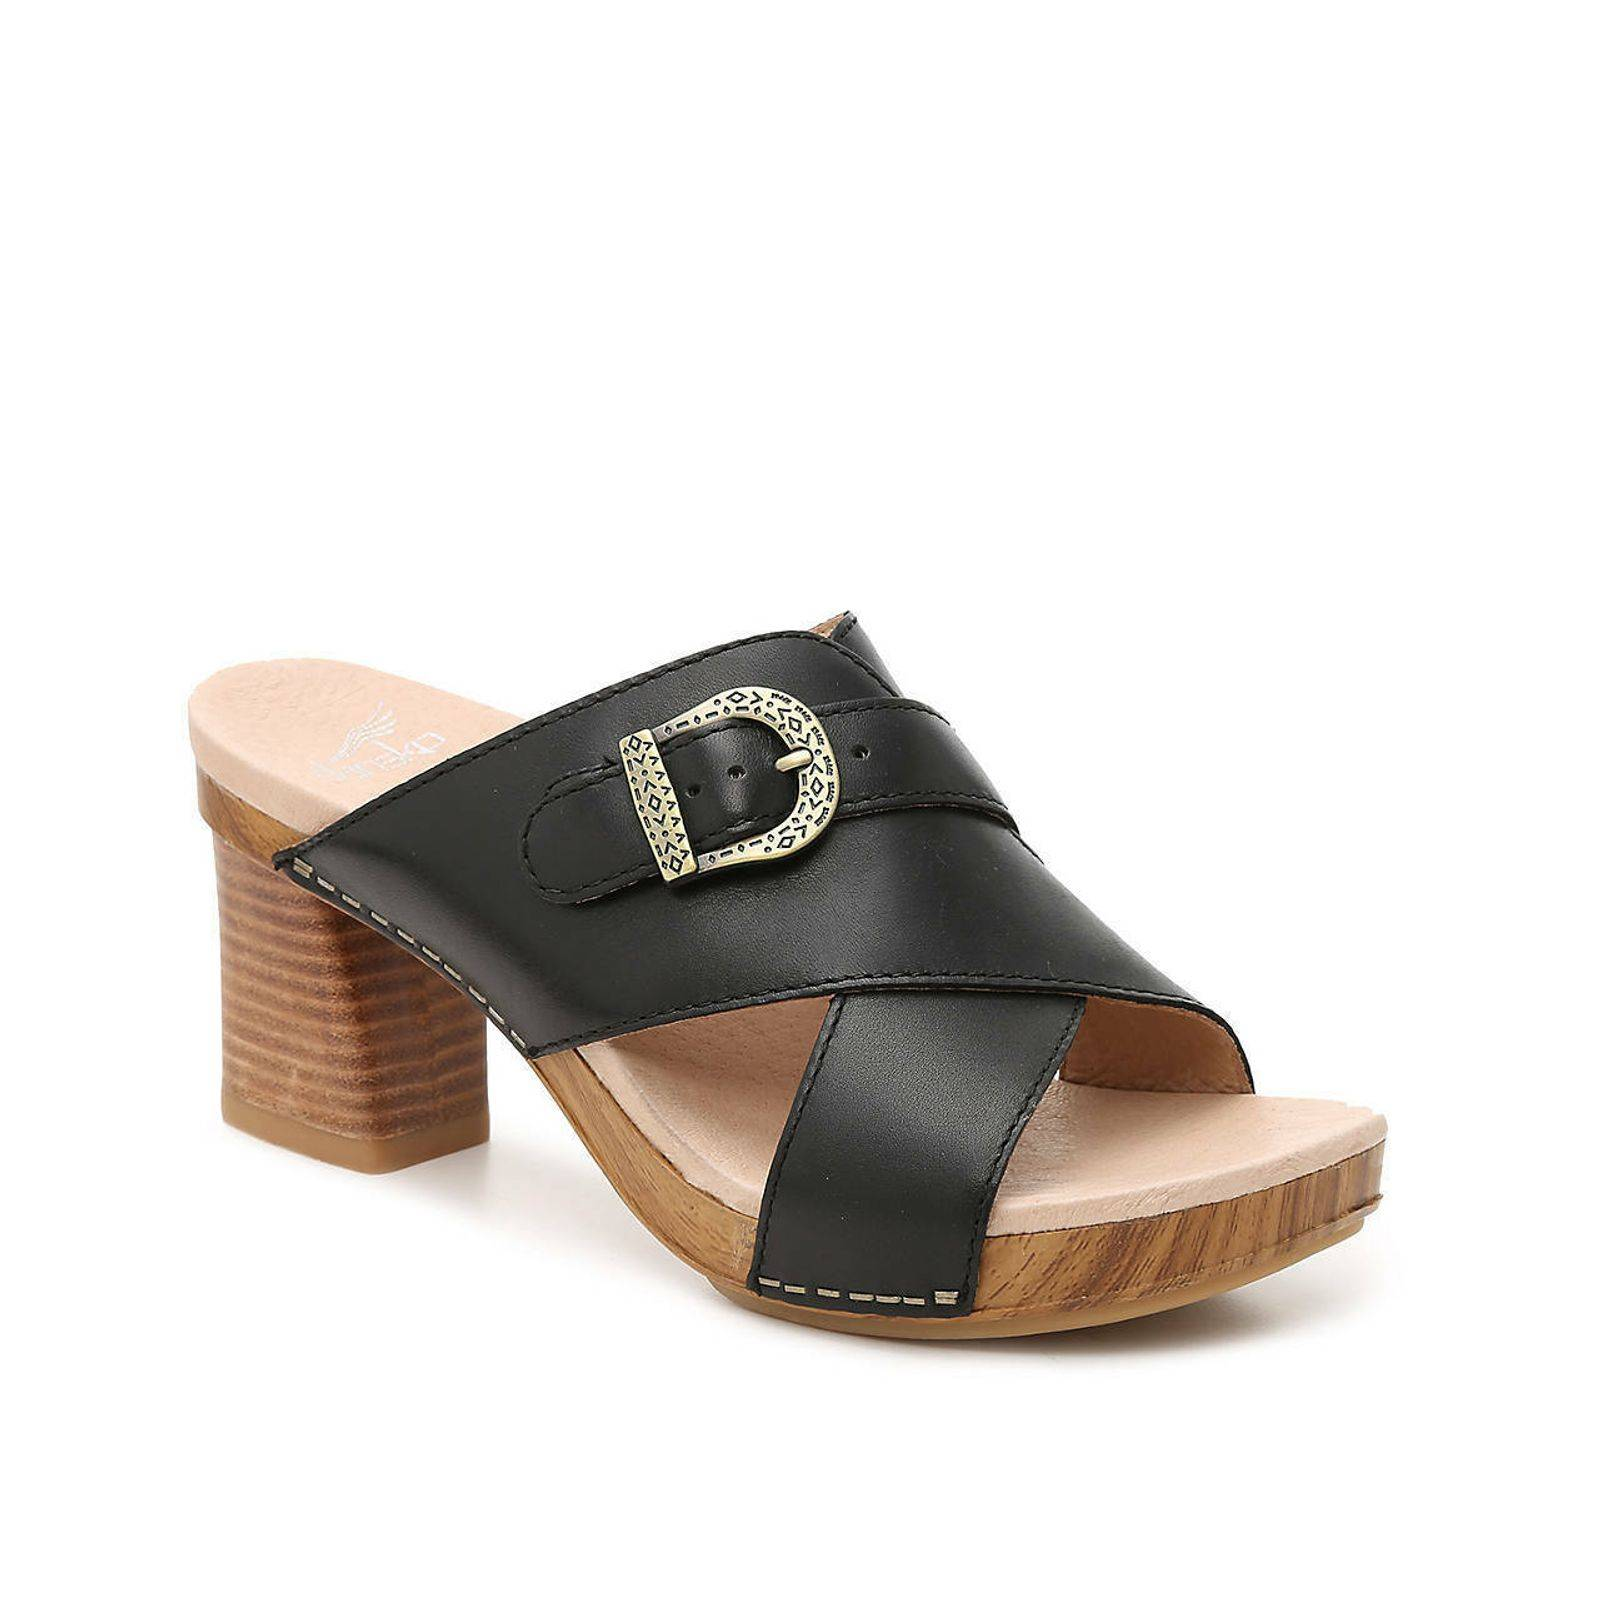 Dansko Amy Sandal in Black Sz 10.5 (41)